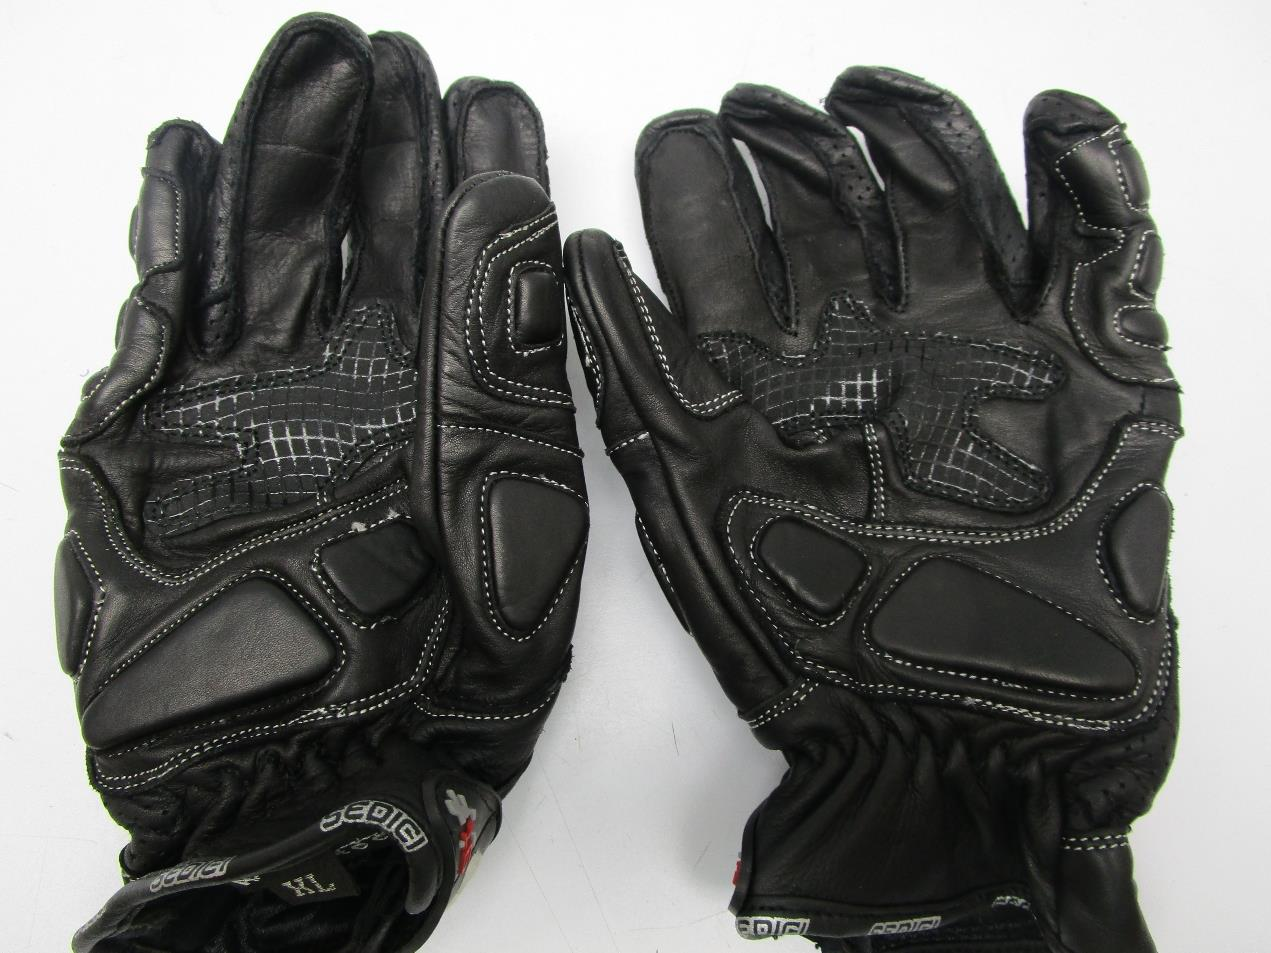 Diavolo leather motorcycle gloves - Condition Display Model And In Great Condition Has Some Light Dirt